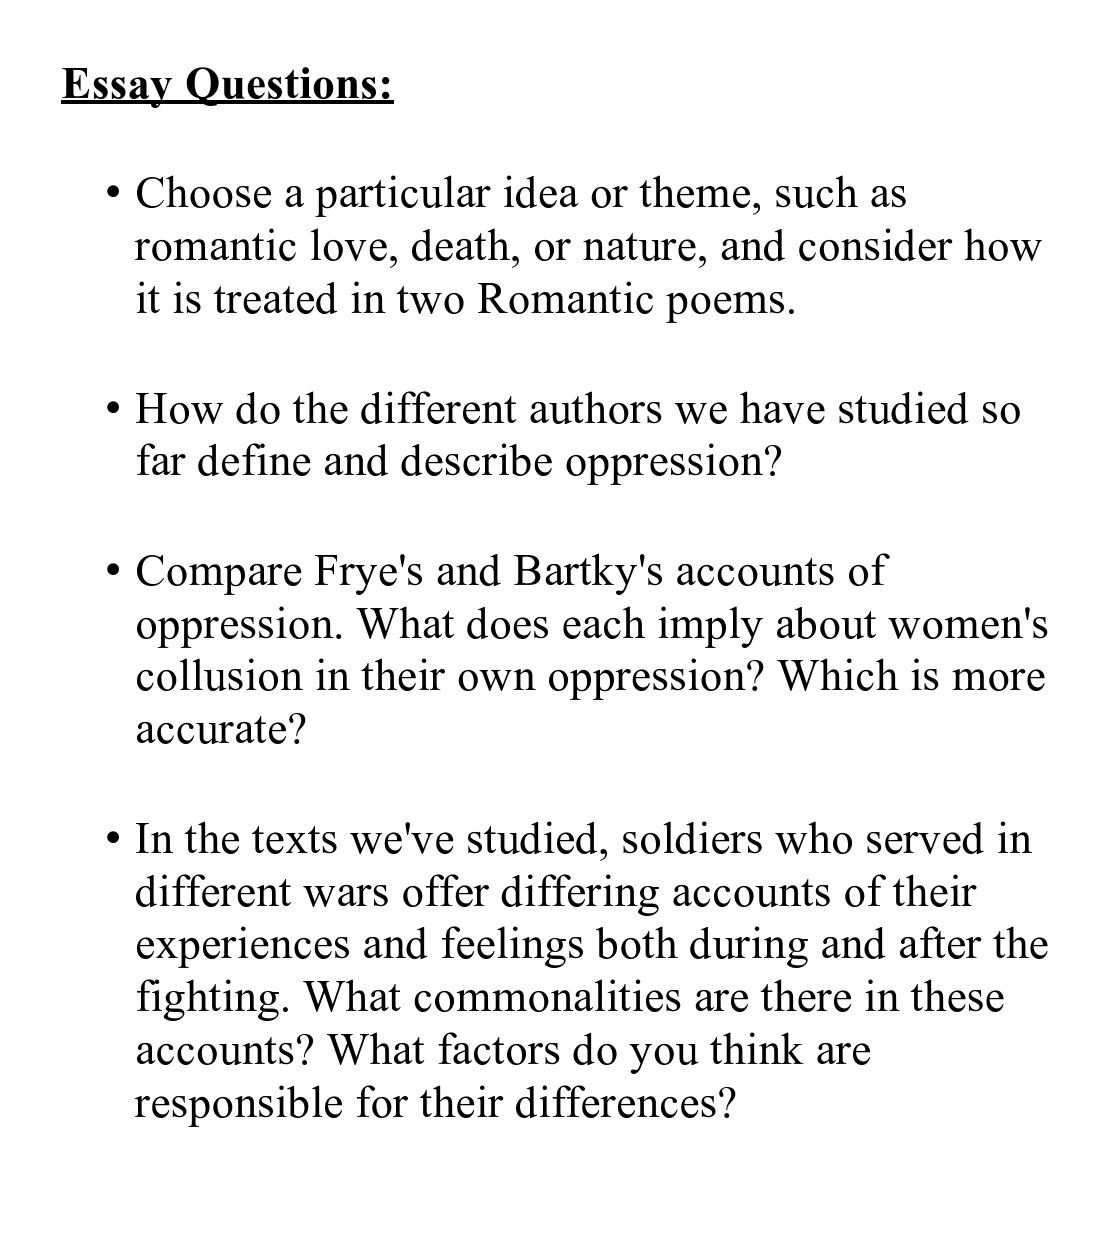 007 Essay Example Prompts Questions Best Writing For Middle School Science The Crucible Macbeth Full